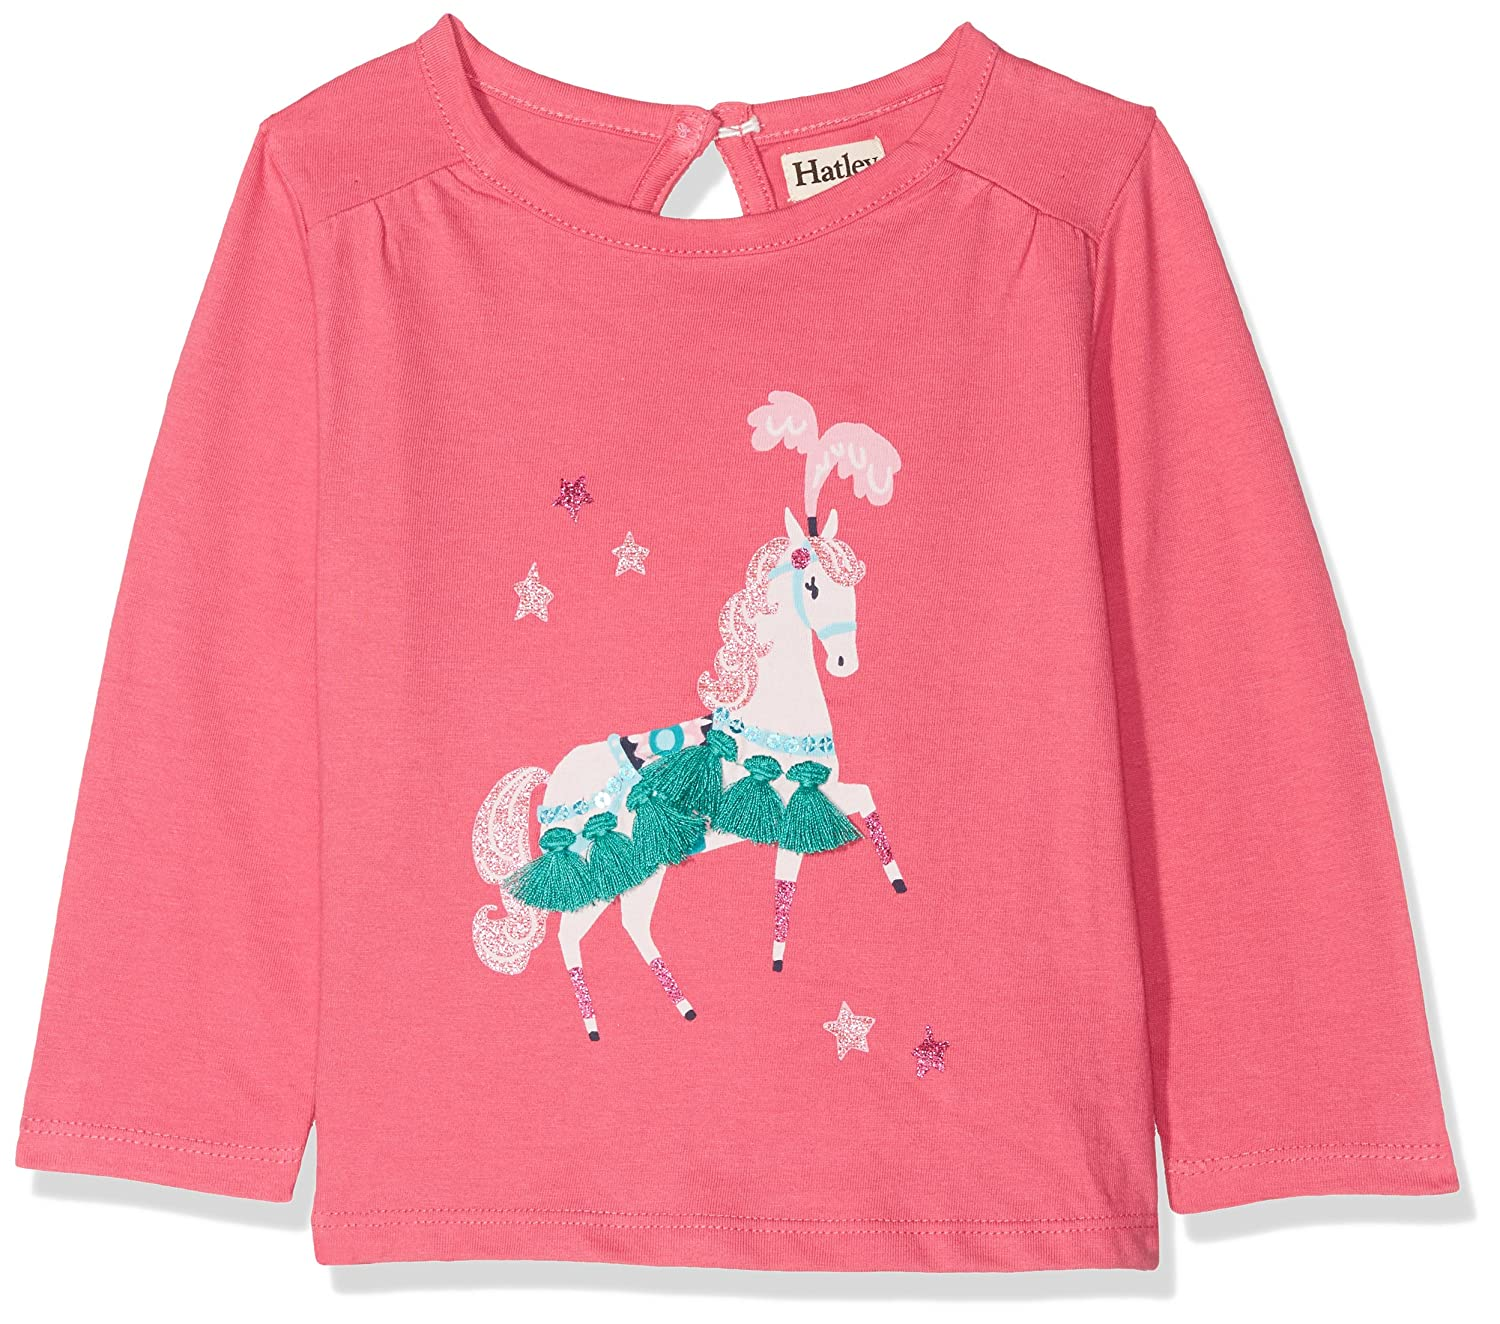 Hatley Baby Girls' Mini Long Sleeve Graphic Tees Longsleeve T-Shirt Grey (Parade Horse) 12-18 Months TSGRUBY207